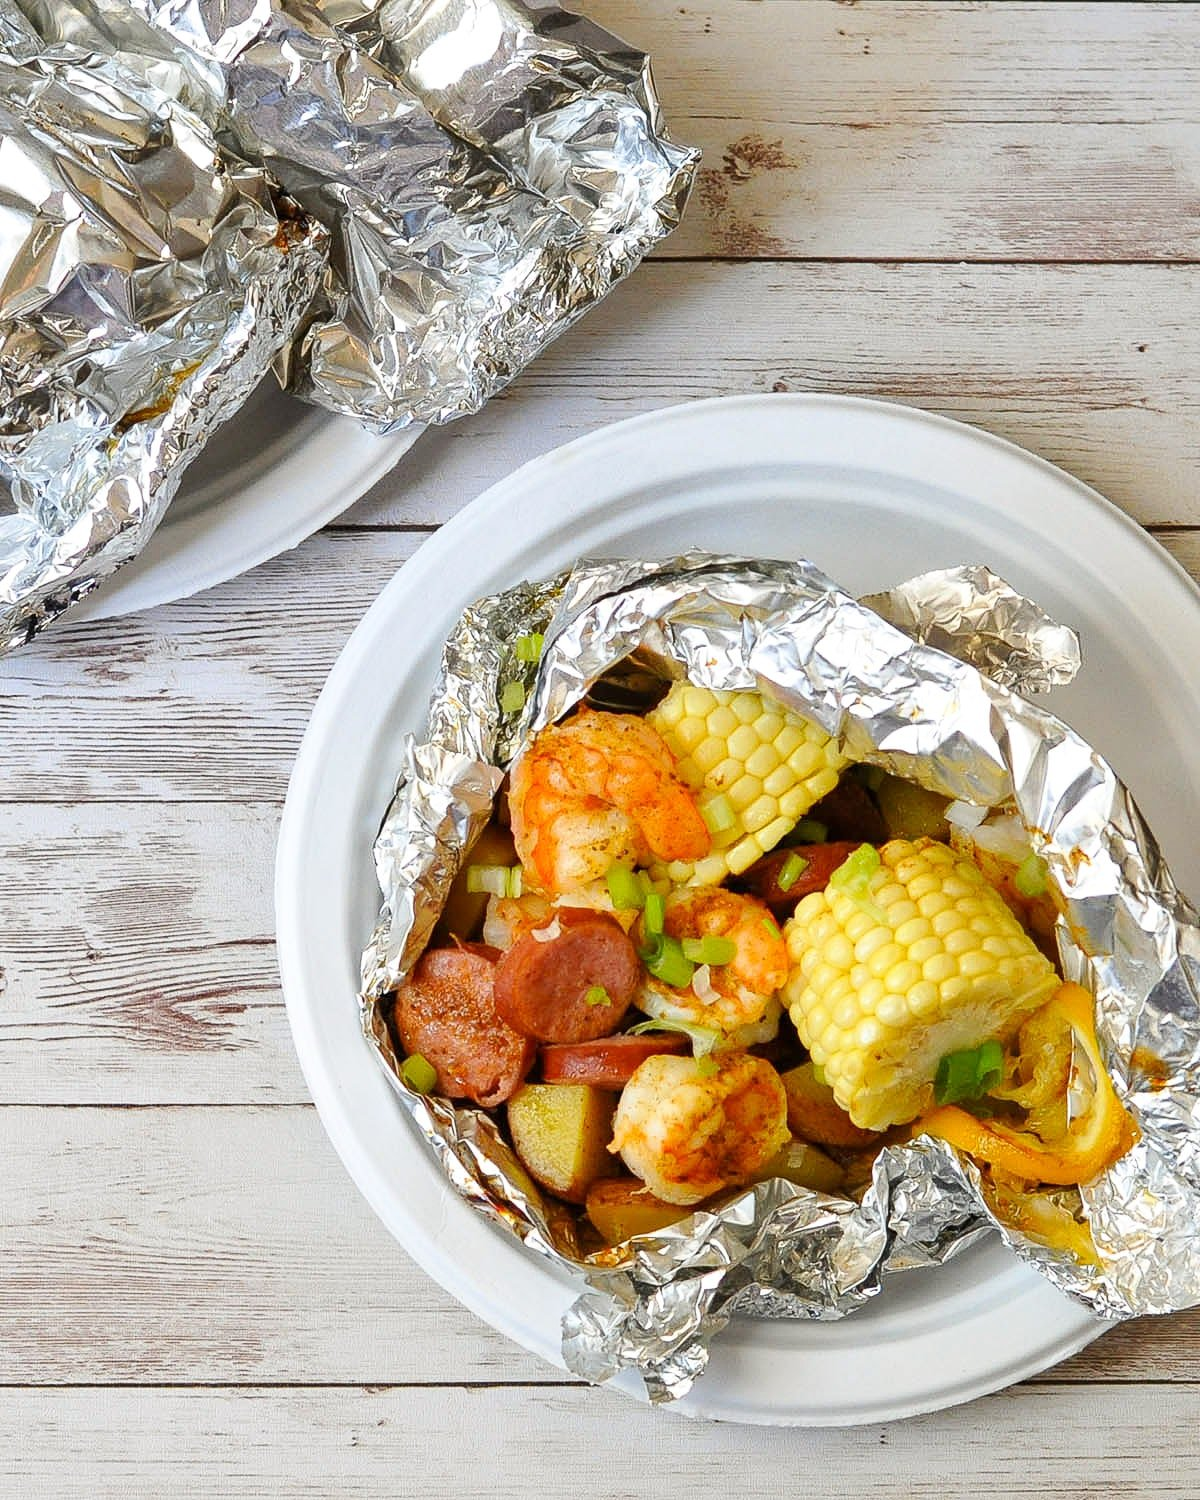 shrimp, sausage, corn, potatoes in foil ready to serve on a paper plate